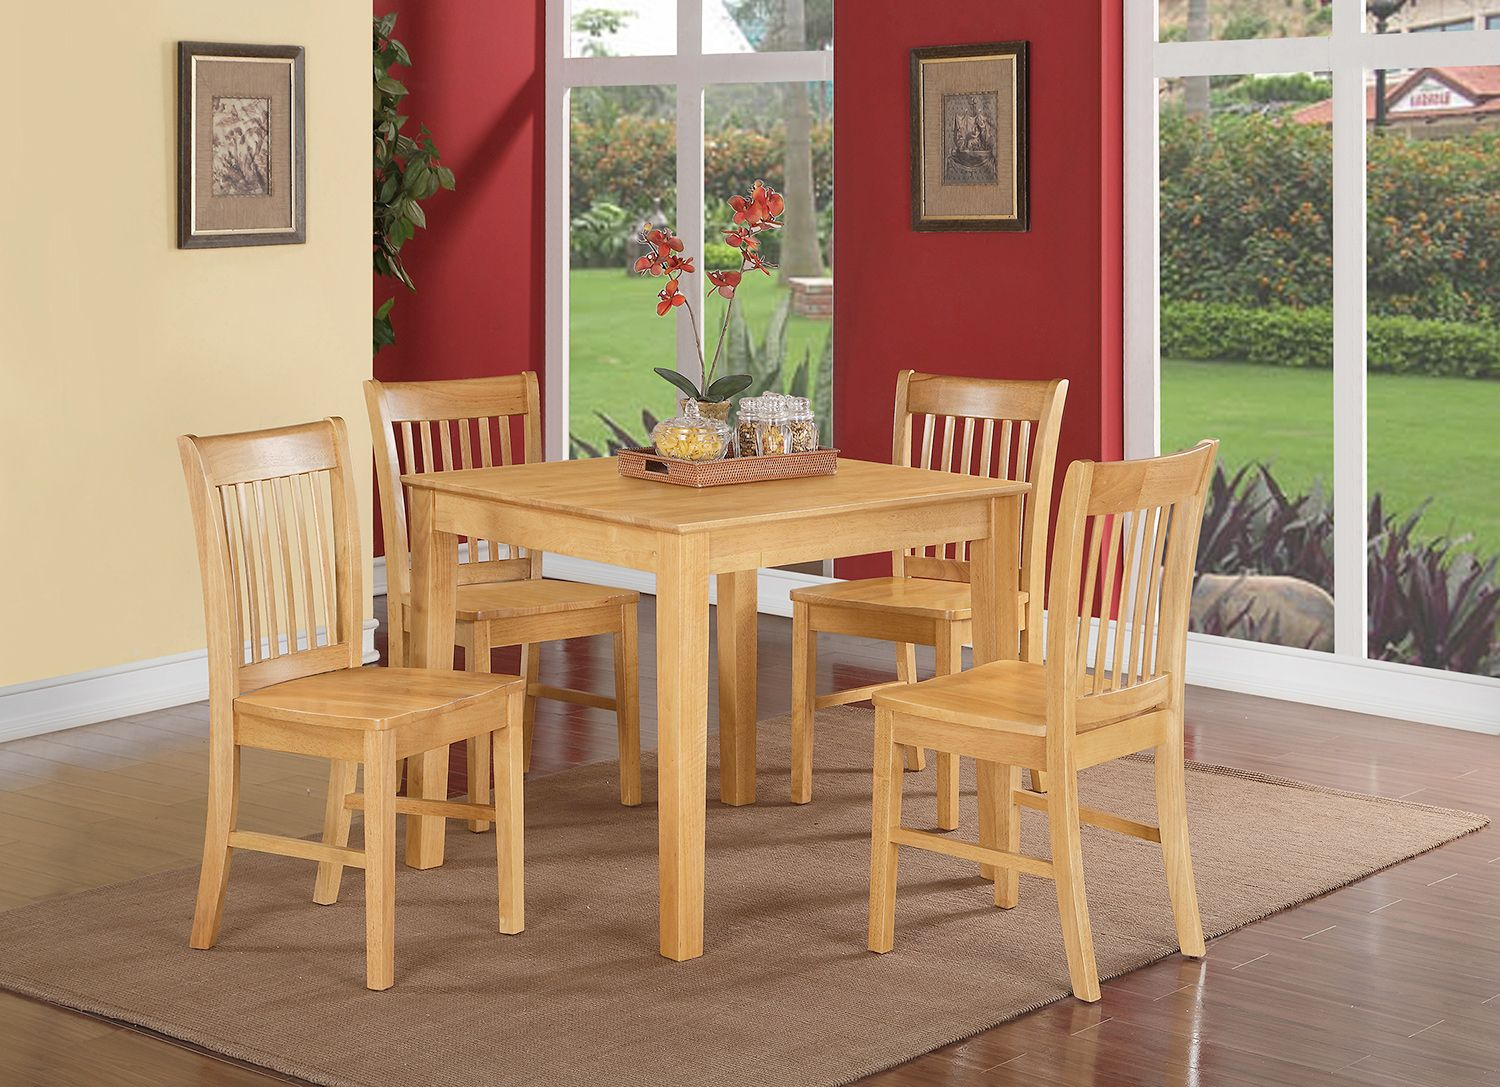 31++ Small square dining table for 2 Best Seller